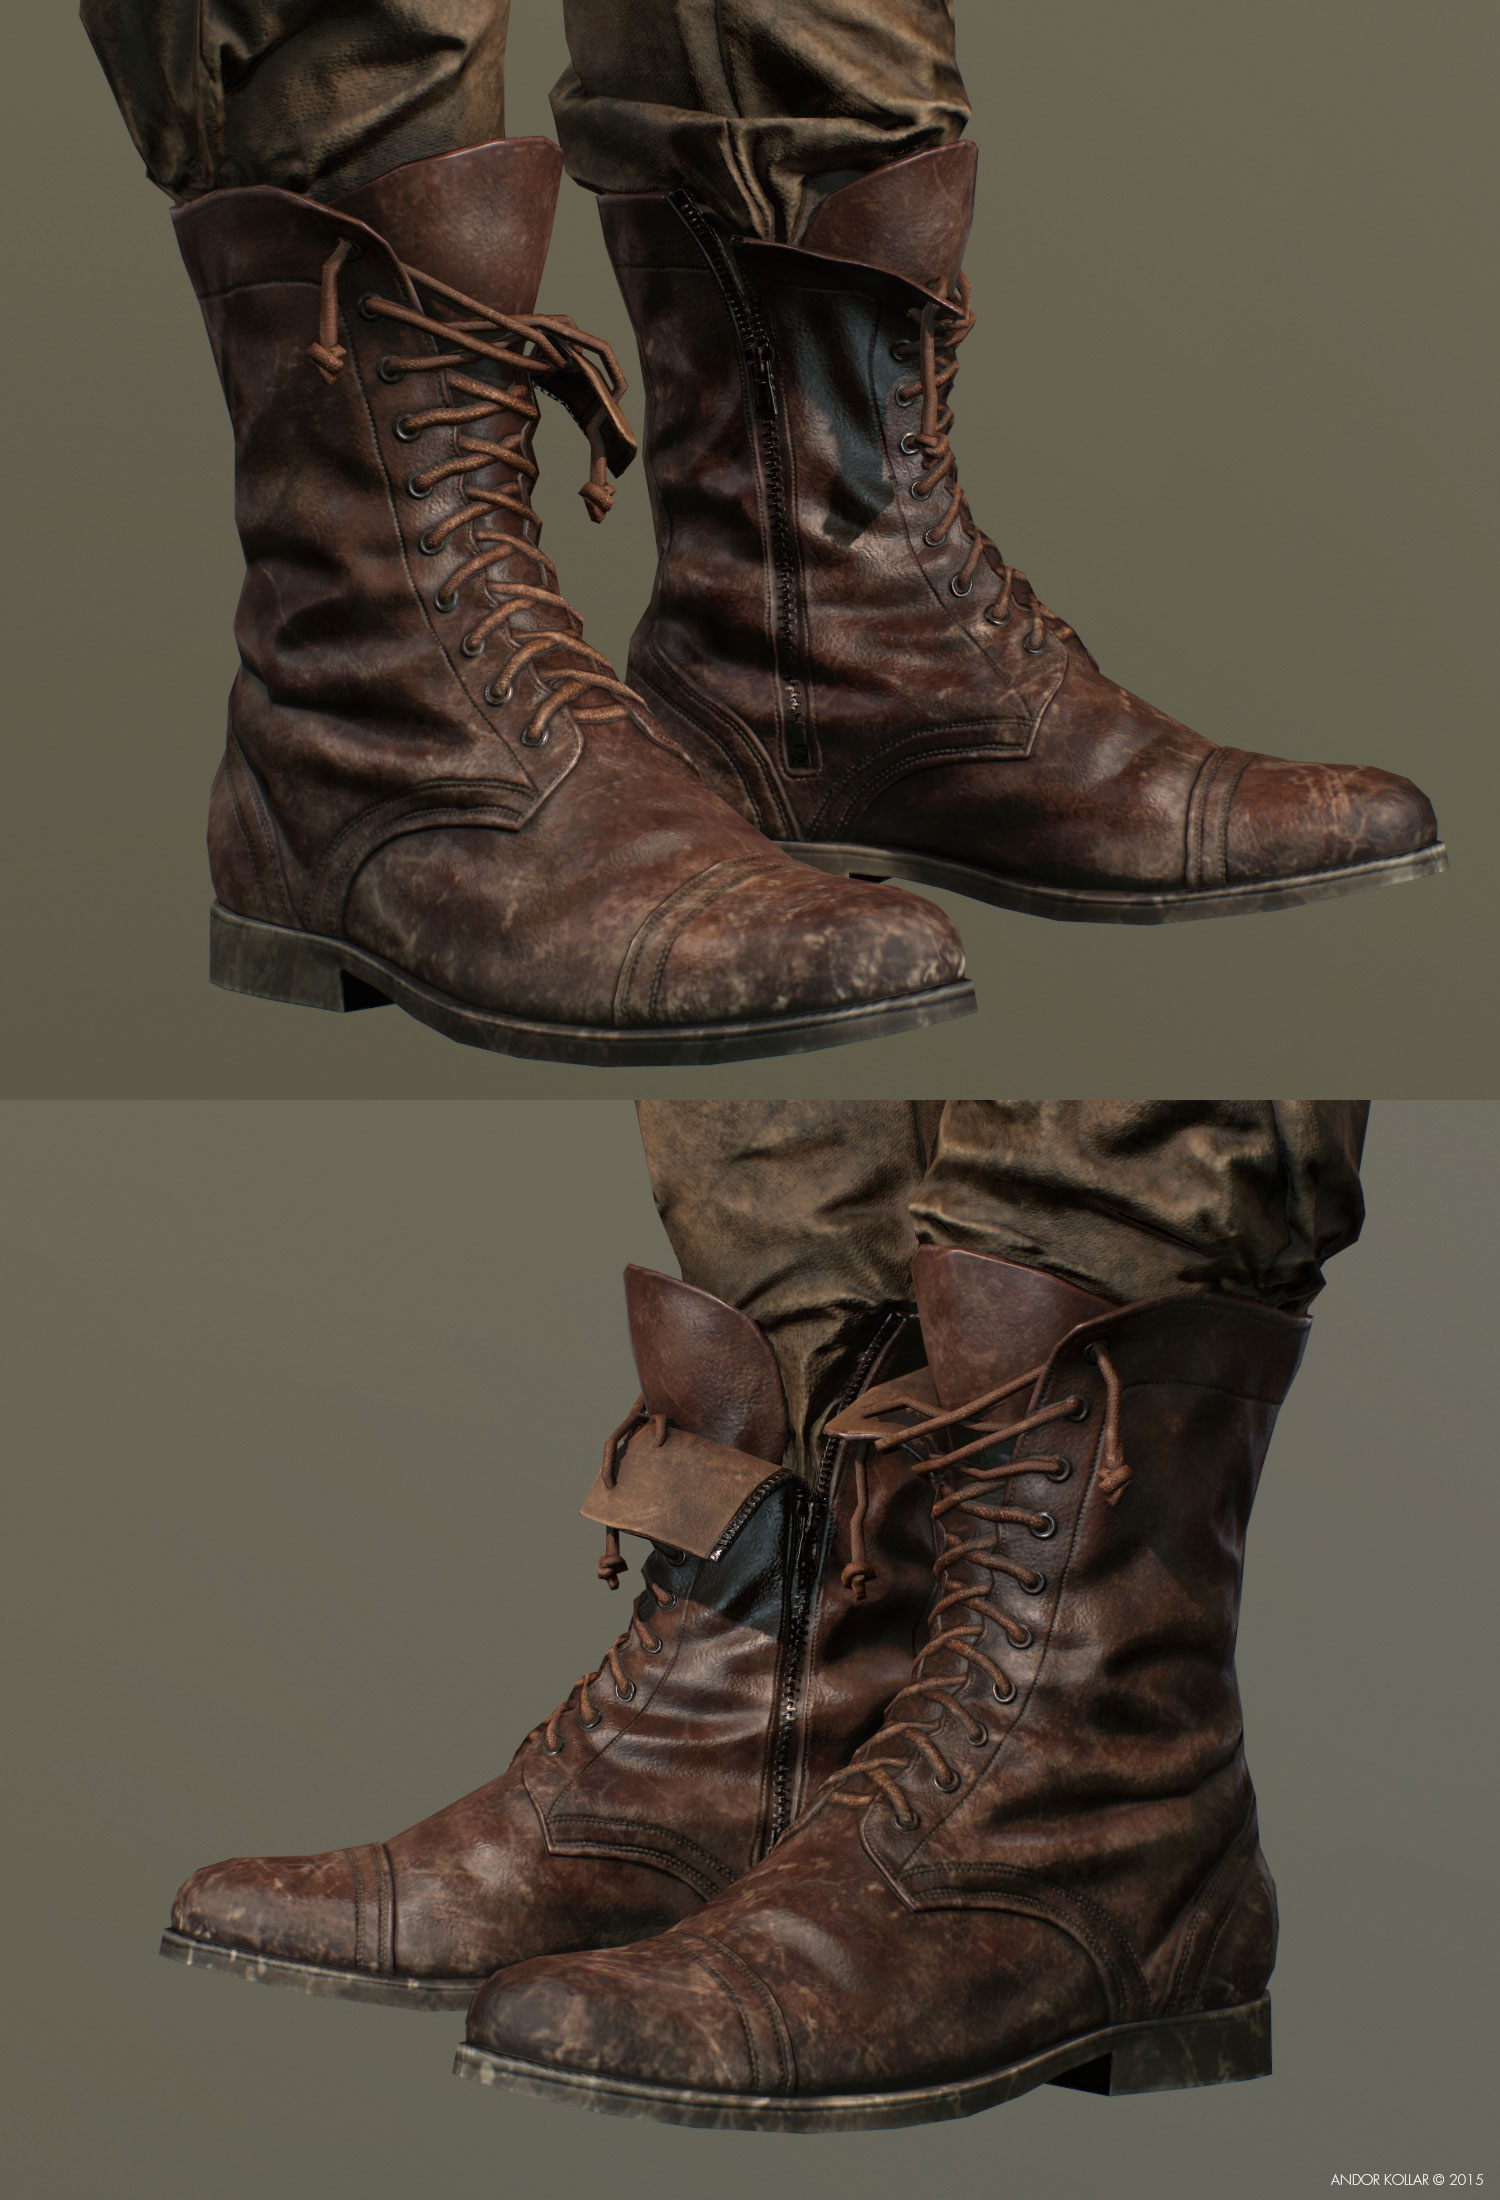 soldier boot